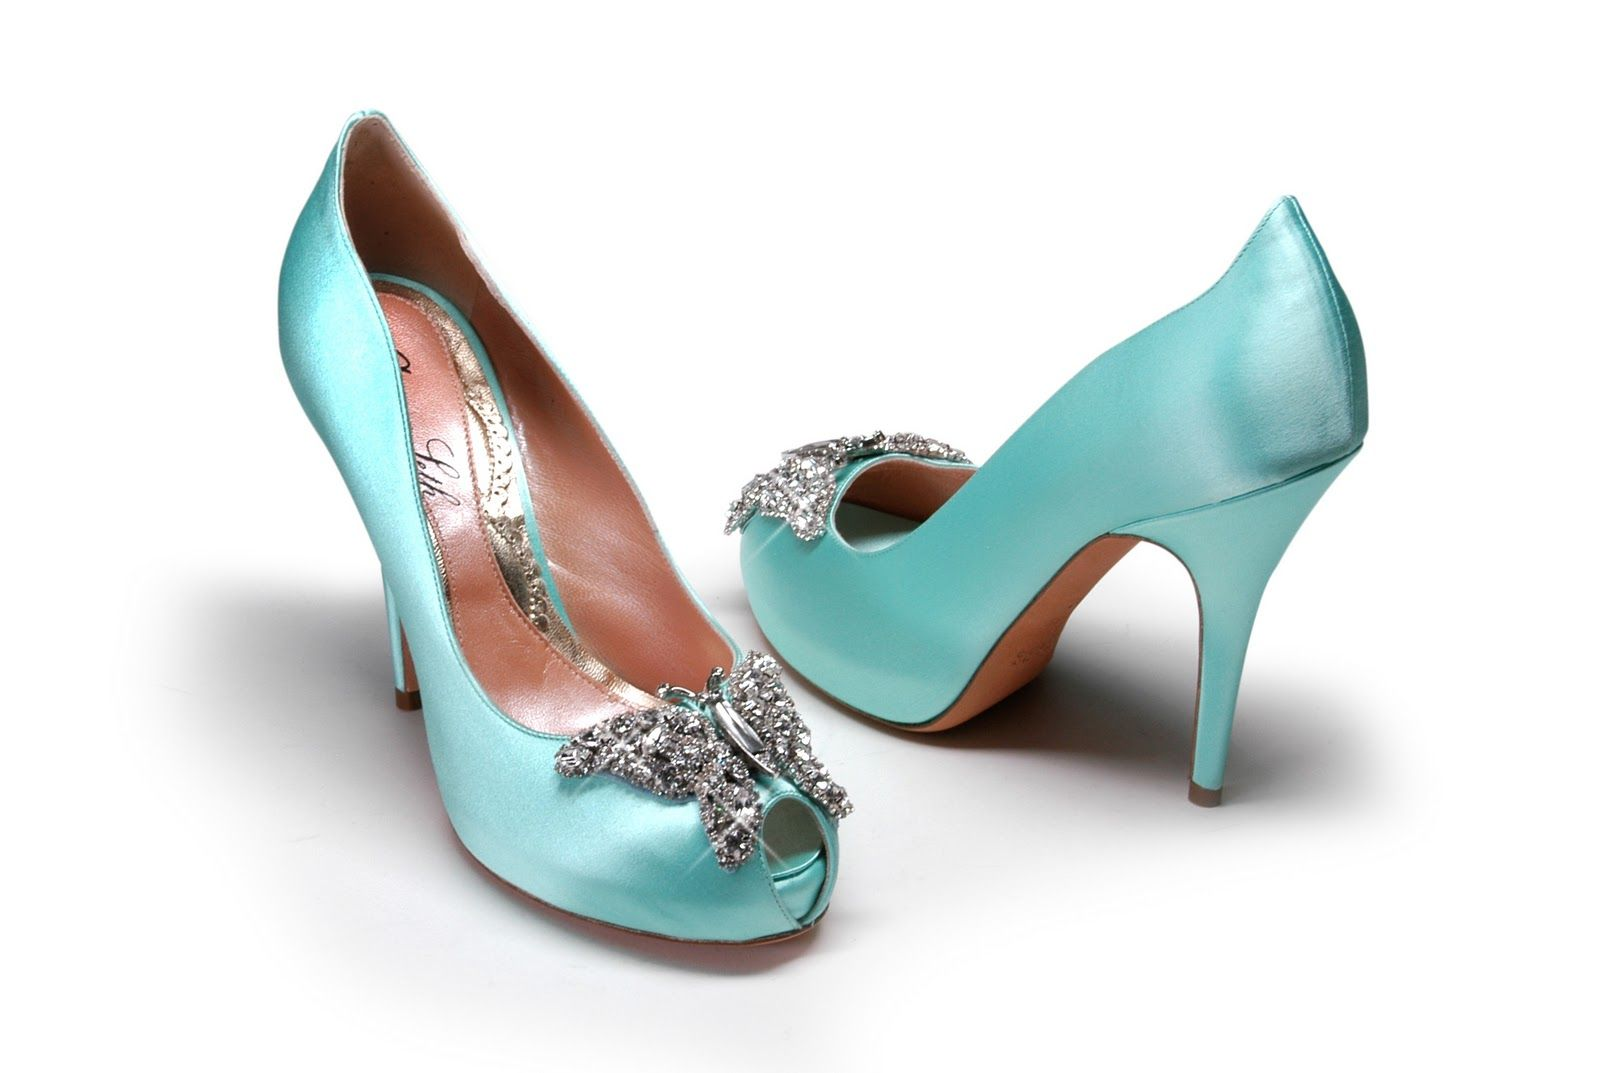 Butterfly Pumps Tiffany Blue Wedding Shoes Tiffany Blue Shoes Wedding Shoes Blue Heels